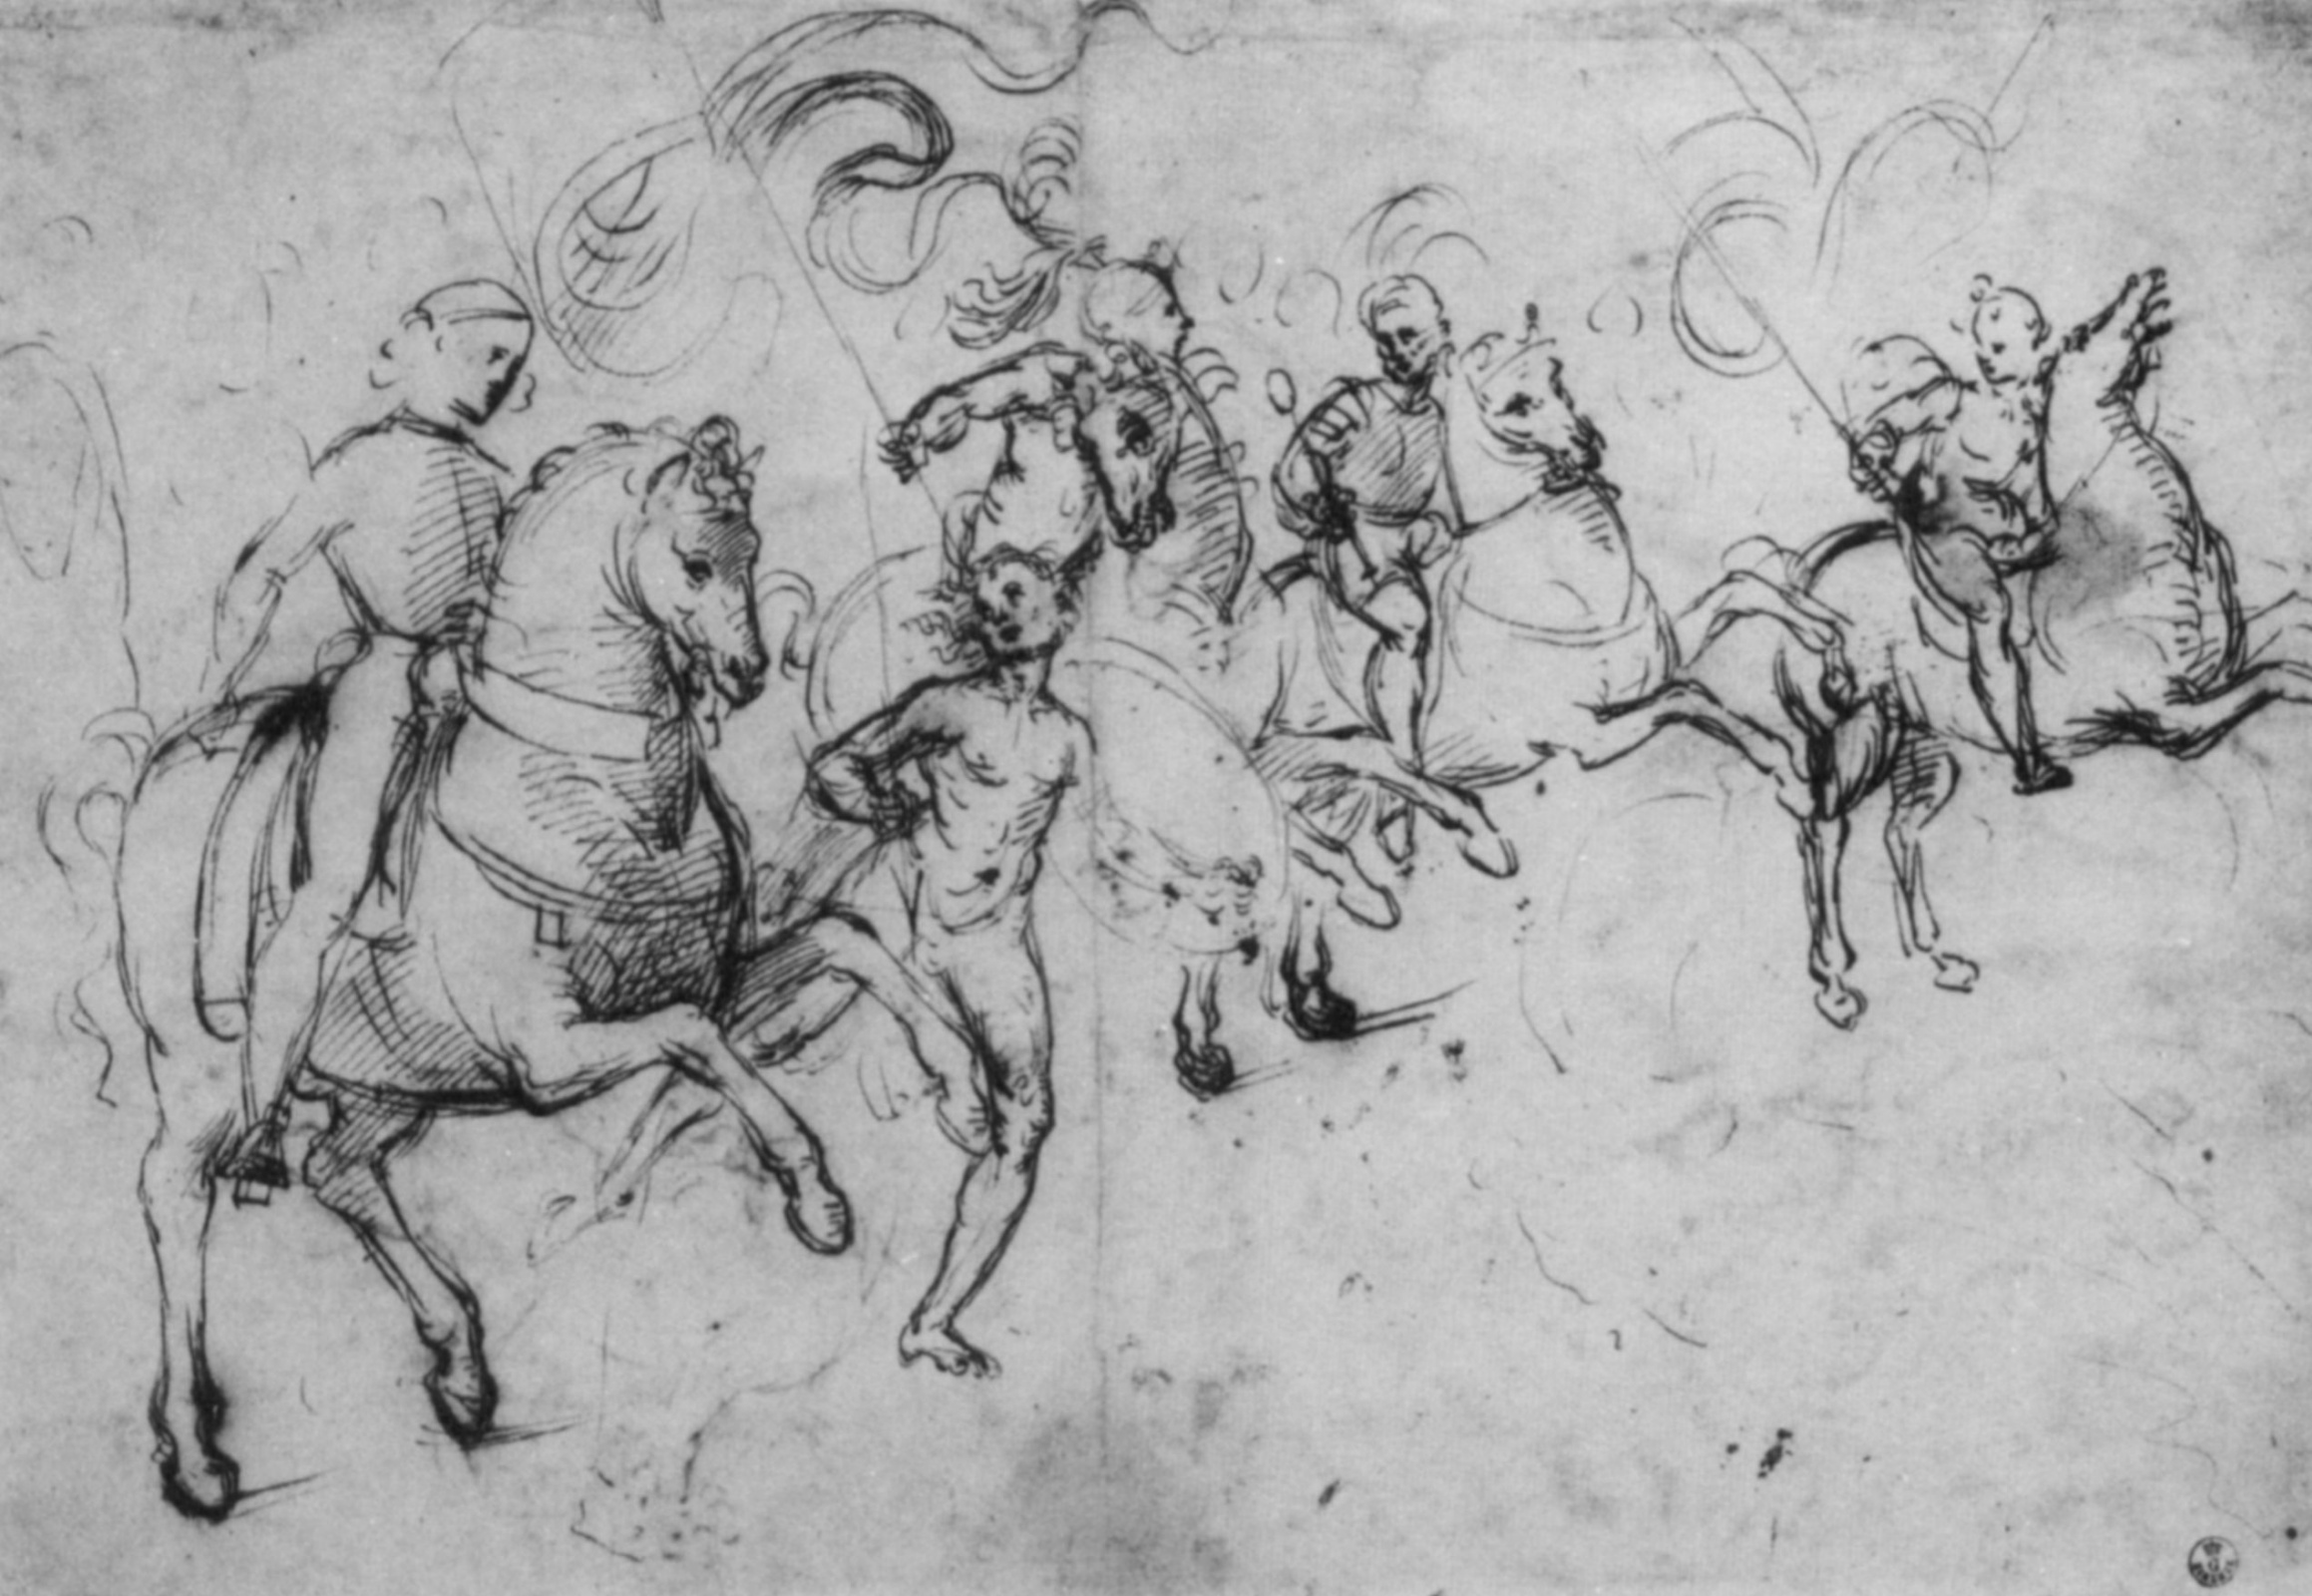 Sketch the four horsemen and captive warrior to paint the library Piccolomini in Siena, 1503, Raphael Sanzio, Italy